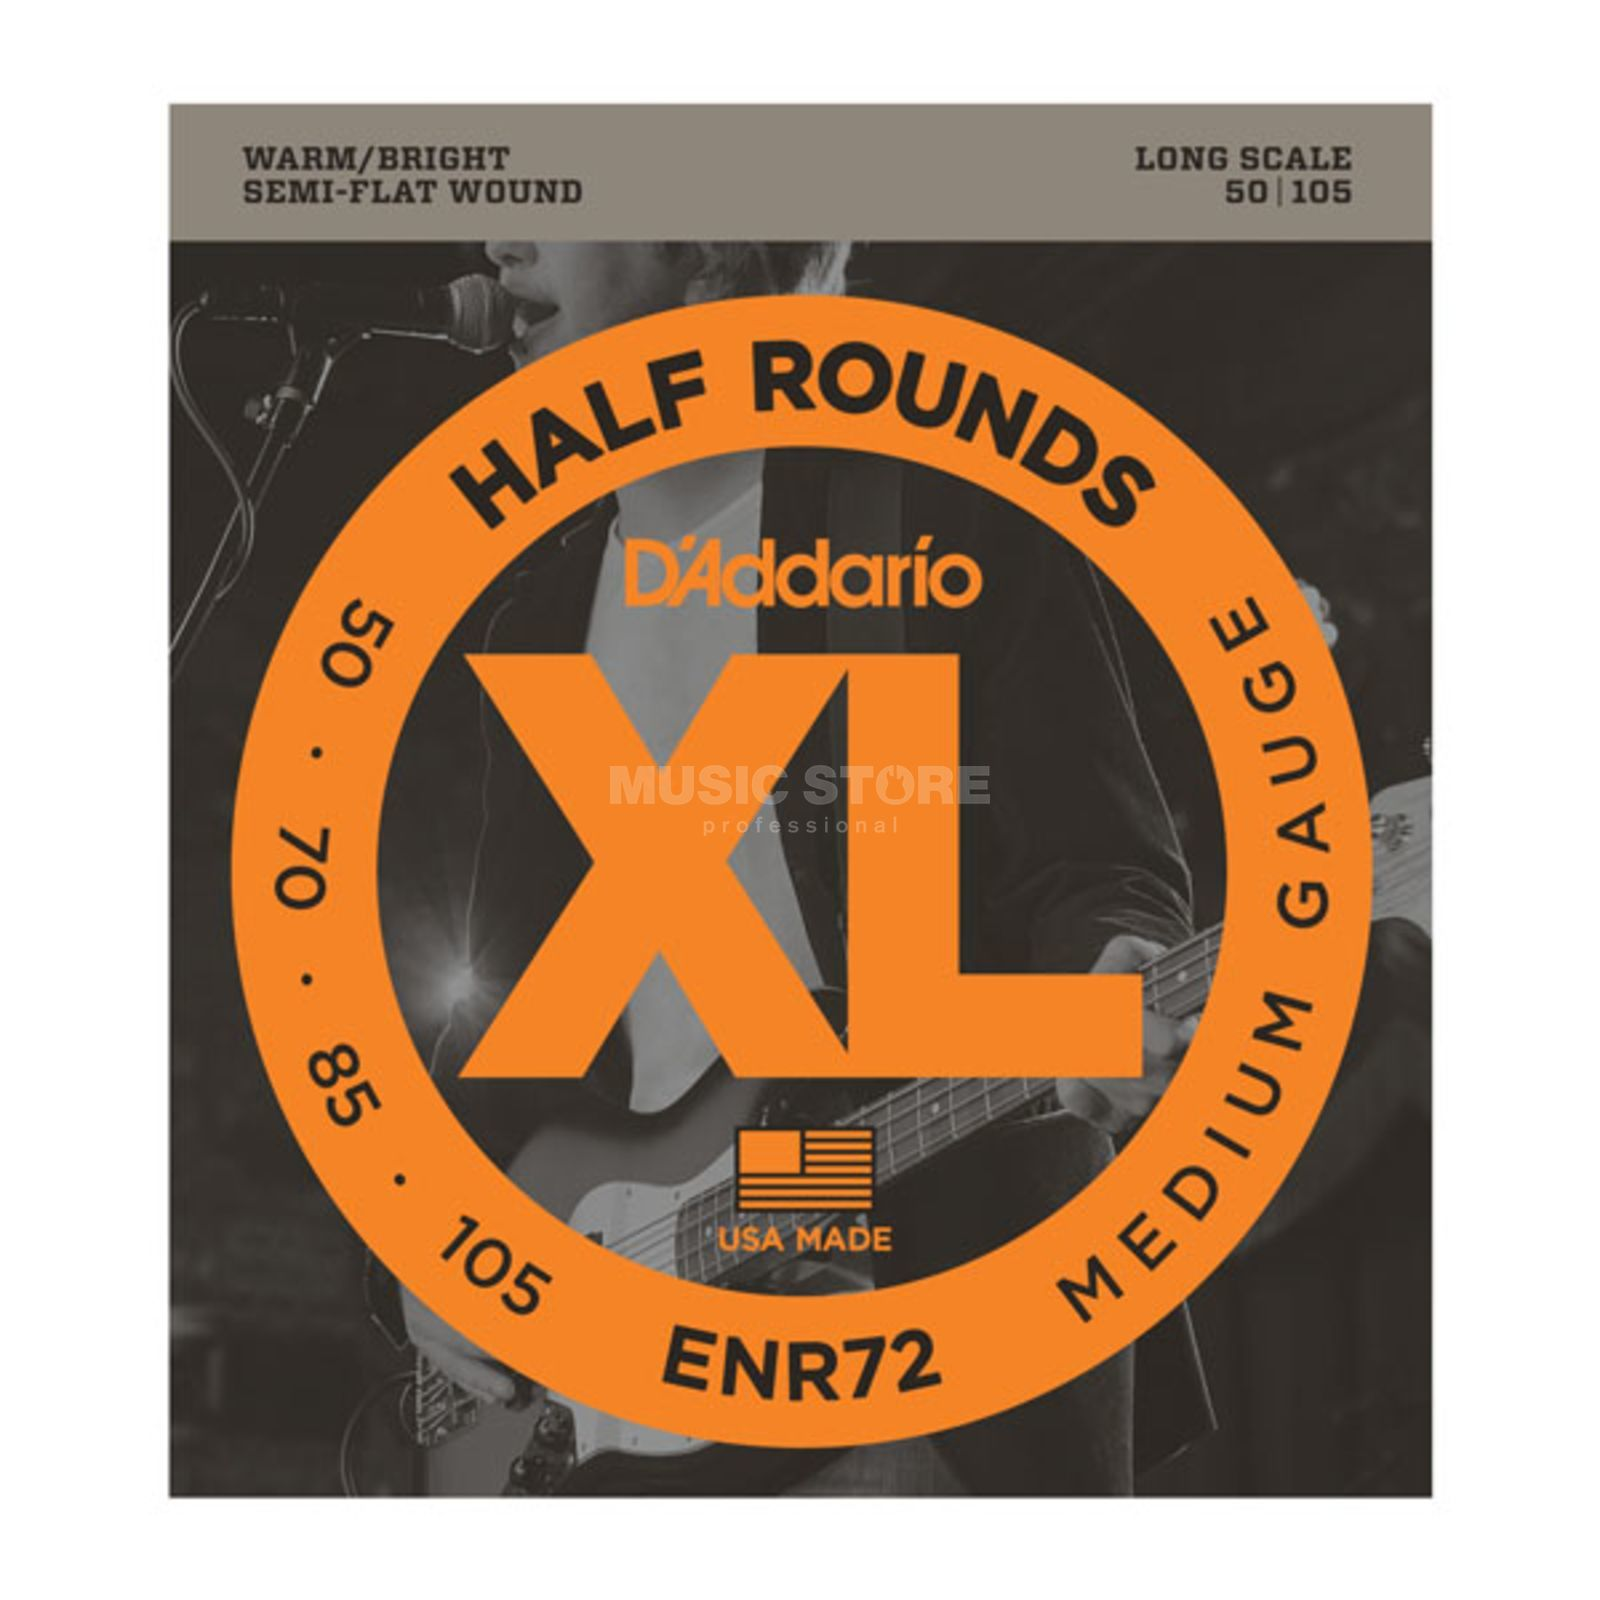 D'Addario 4 Set Bass XL Half Rounds 50-105 50-70-85-105, ENR72 Product Image